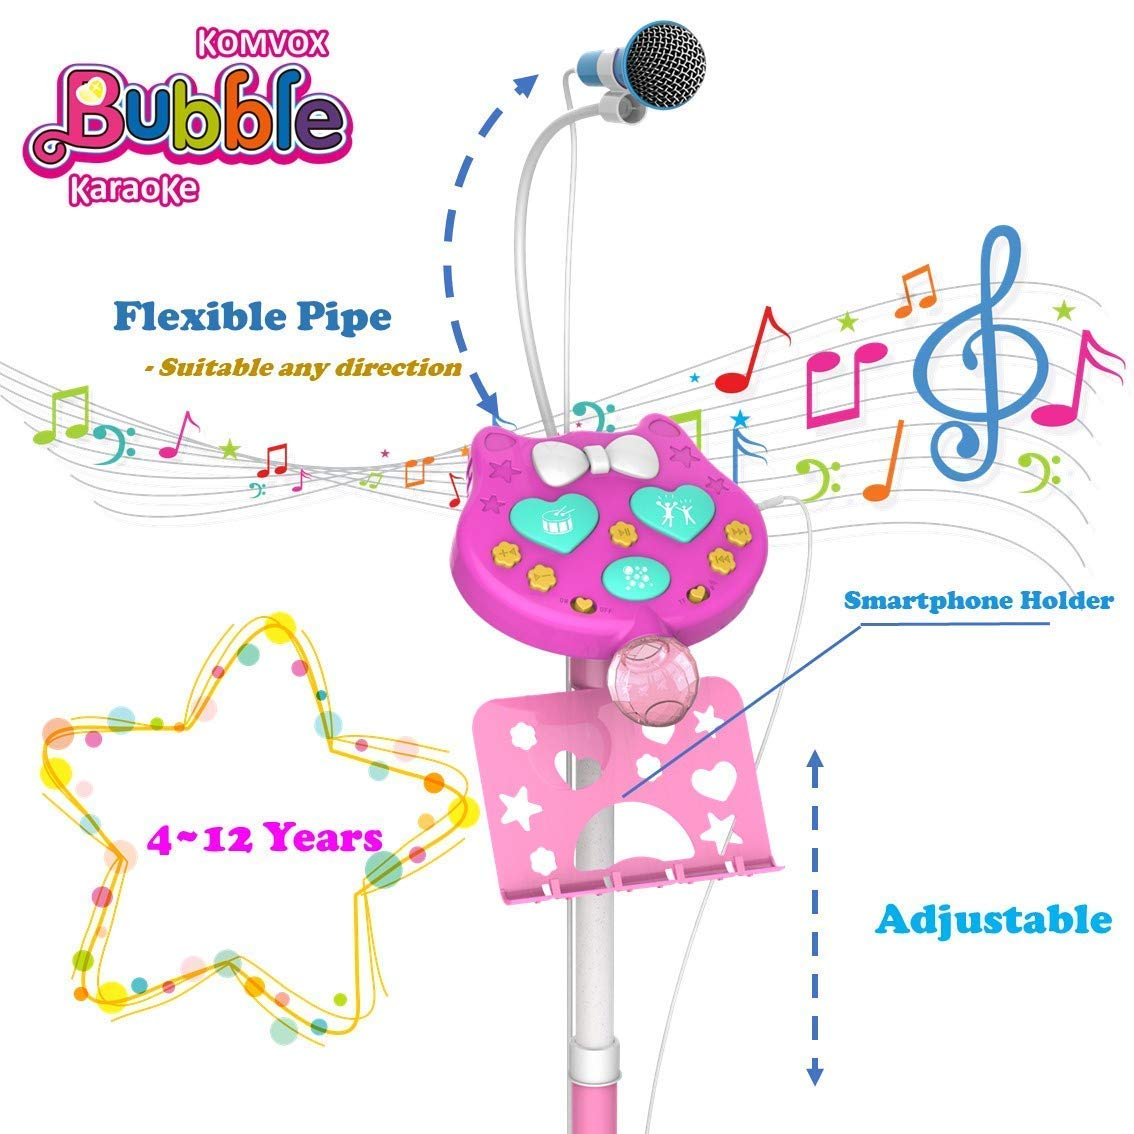 Kids Karaoke Microphone With Stand, Kids Karaoke Machine With Microphone Singing, Creative Birthday Gifts For Girls Age 3 4 5 6 Year Old Boys, Enjoy Bubbles Cheering Drum Effects by TiMi Tree (Image #5)